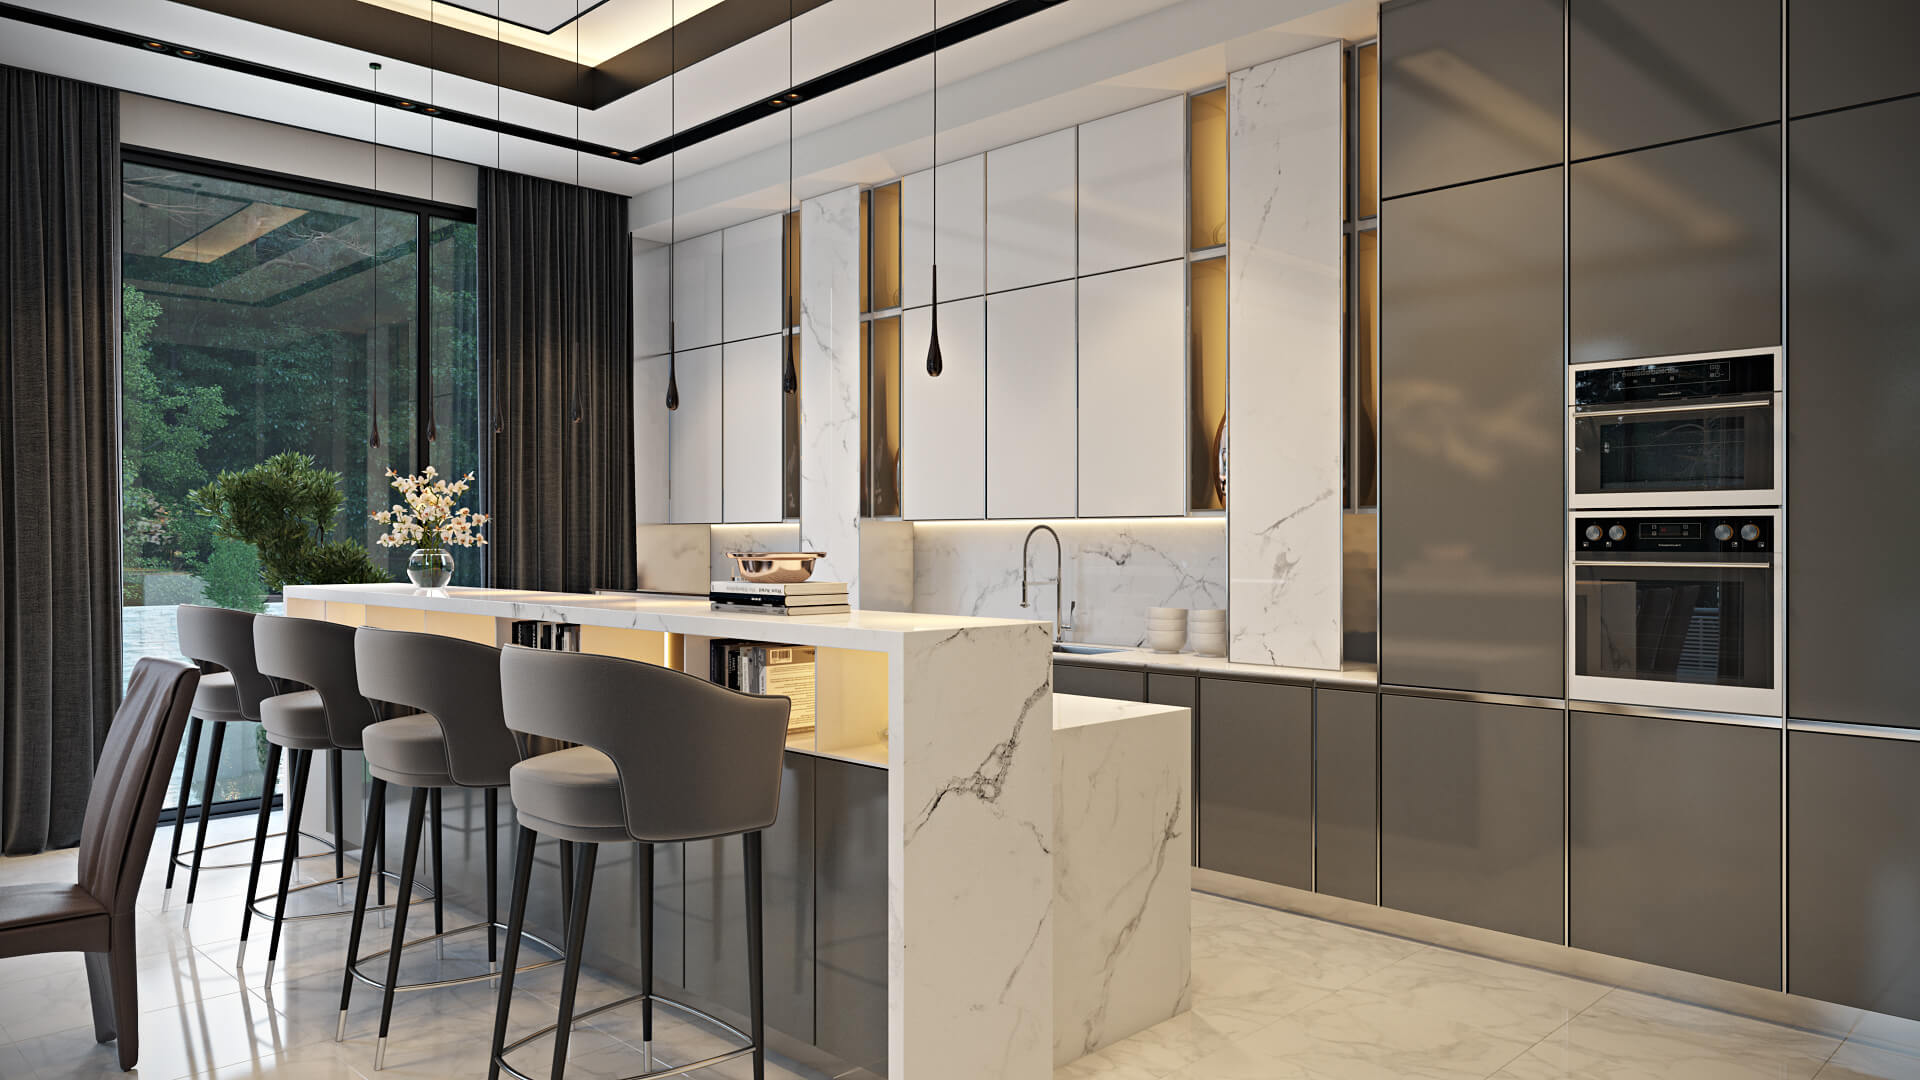 custom furniture rendering of a kitchen